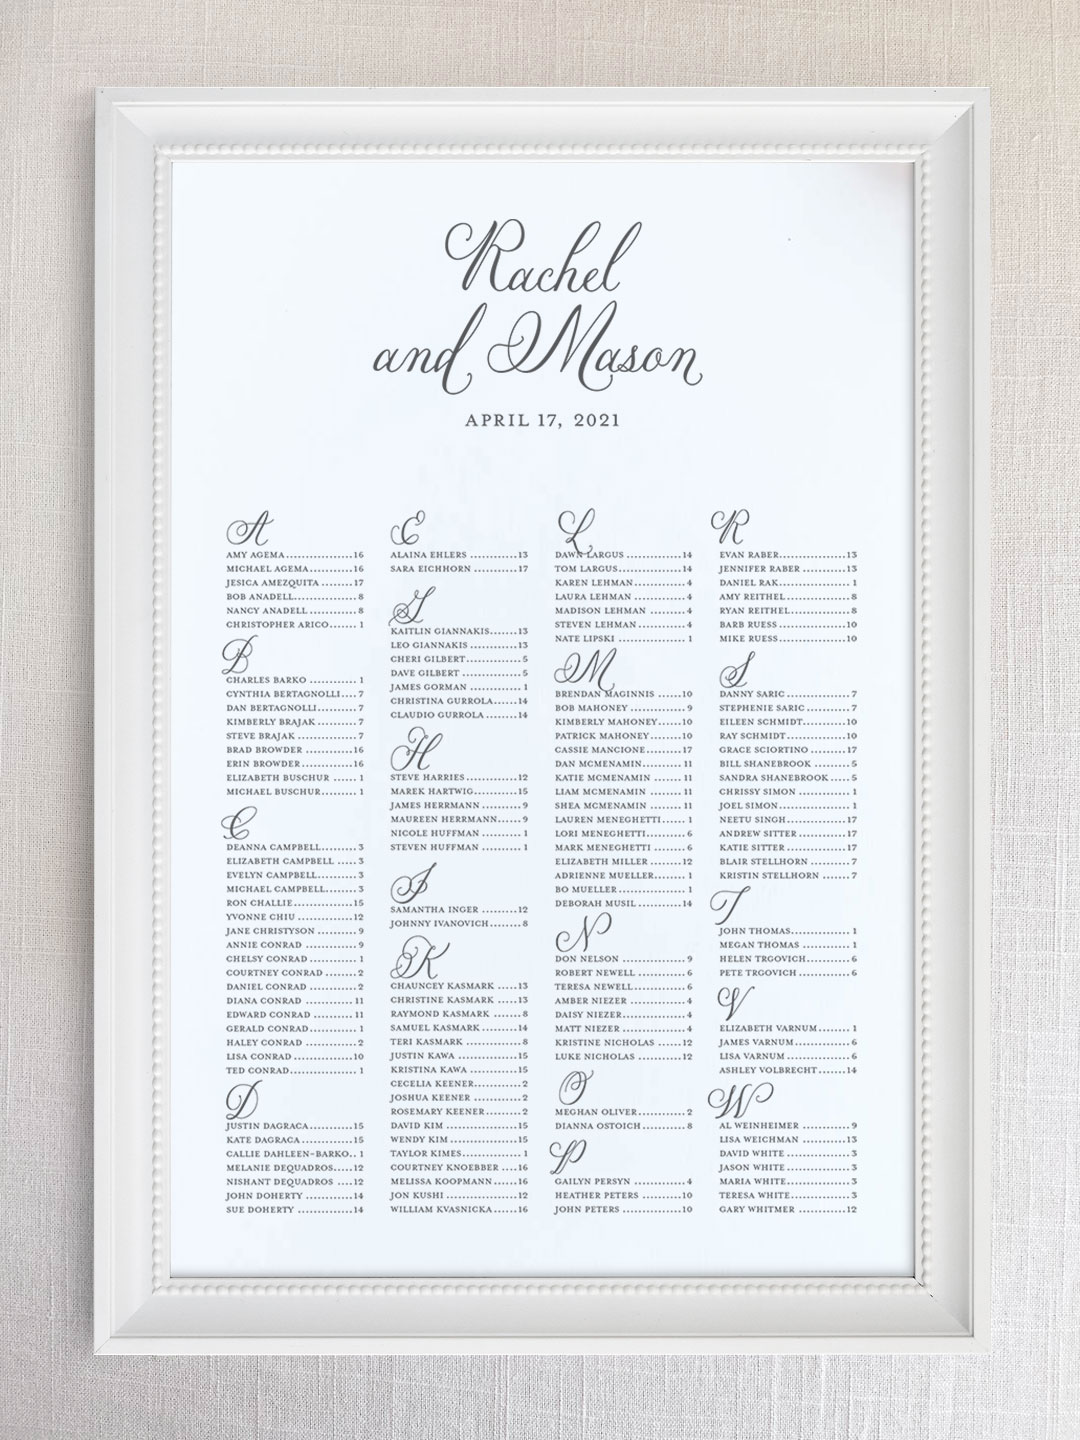 Wedding seating chart with romantic garden party script font organized alphabetically.